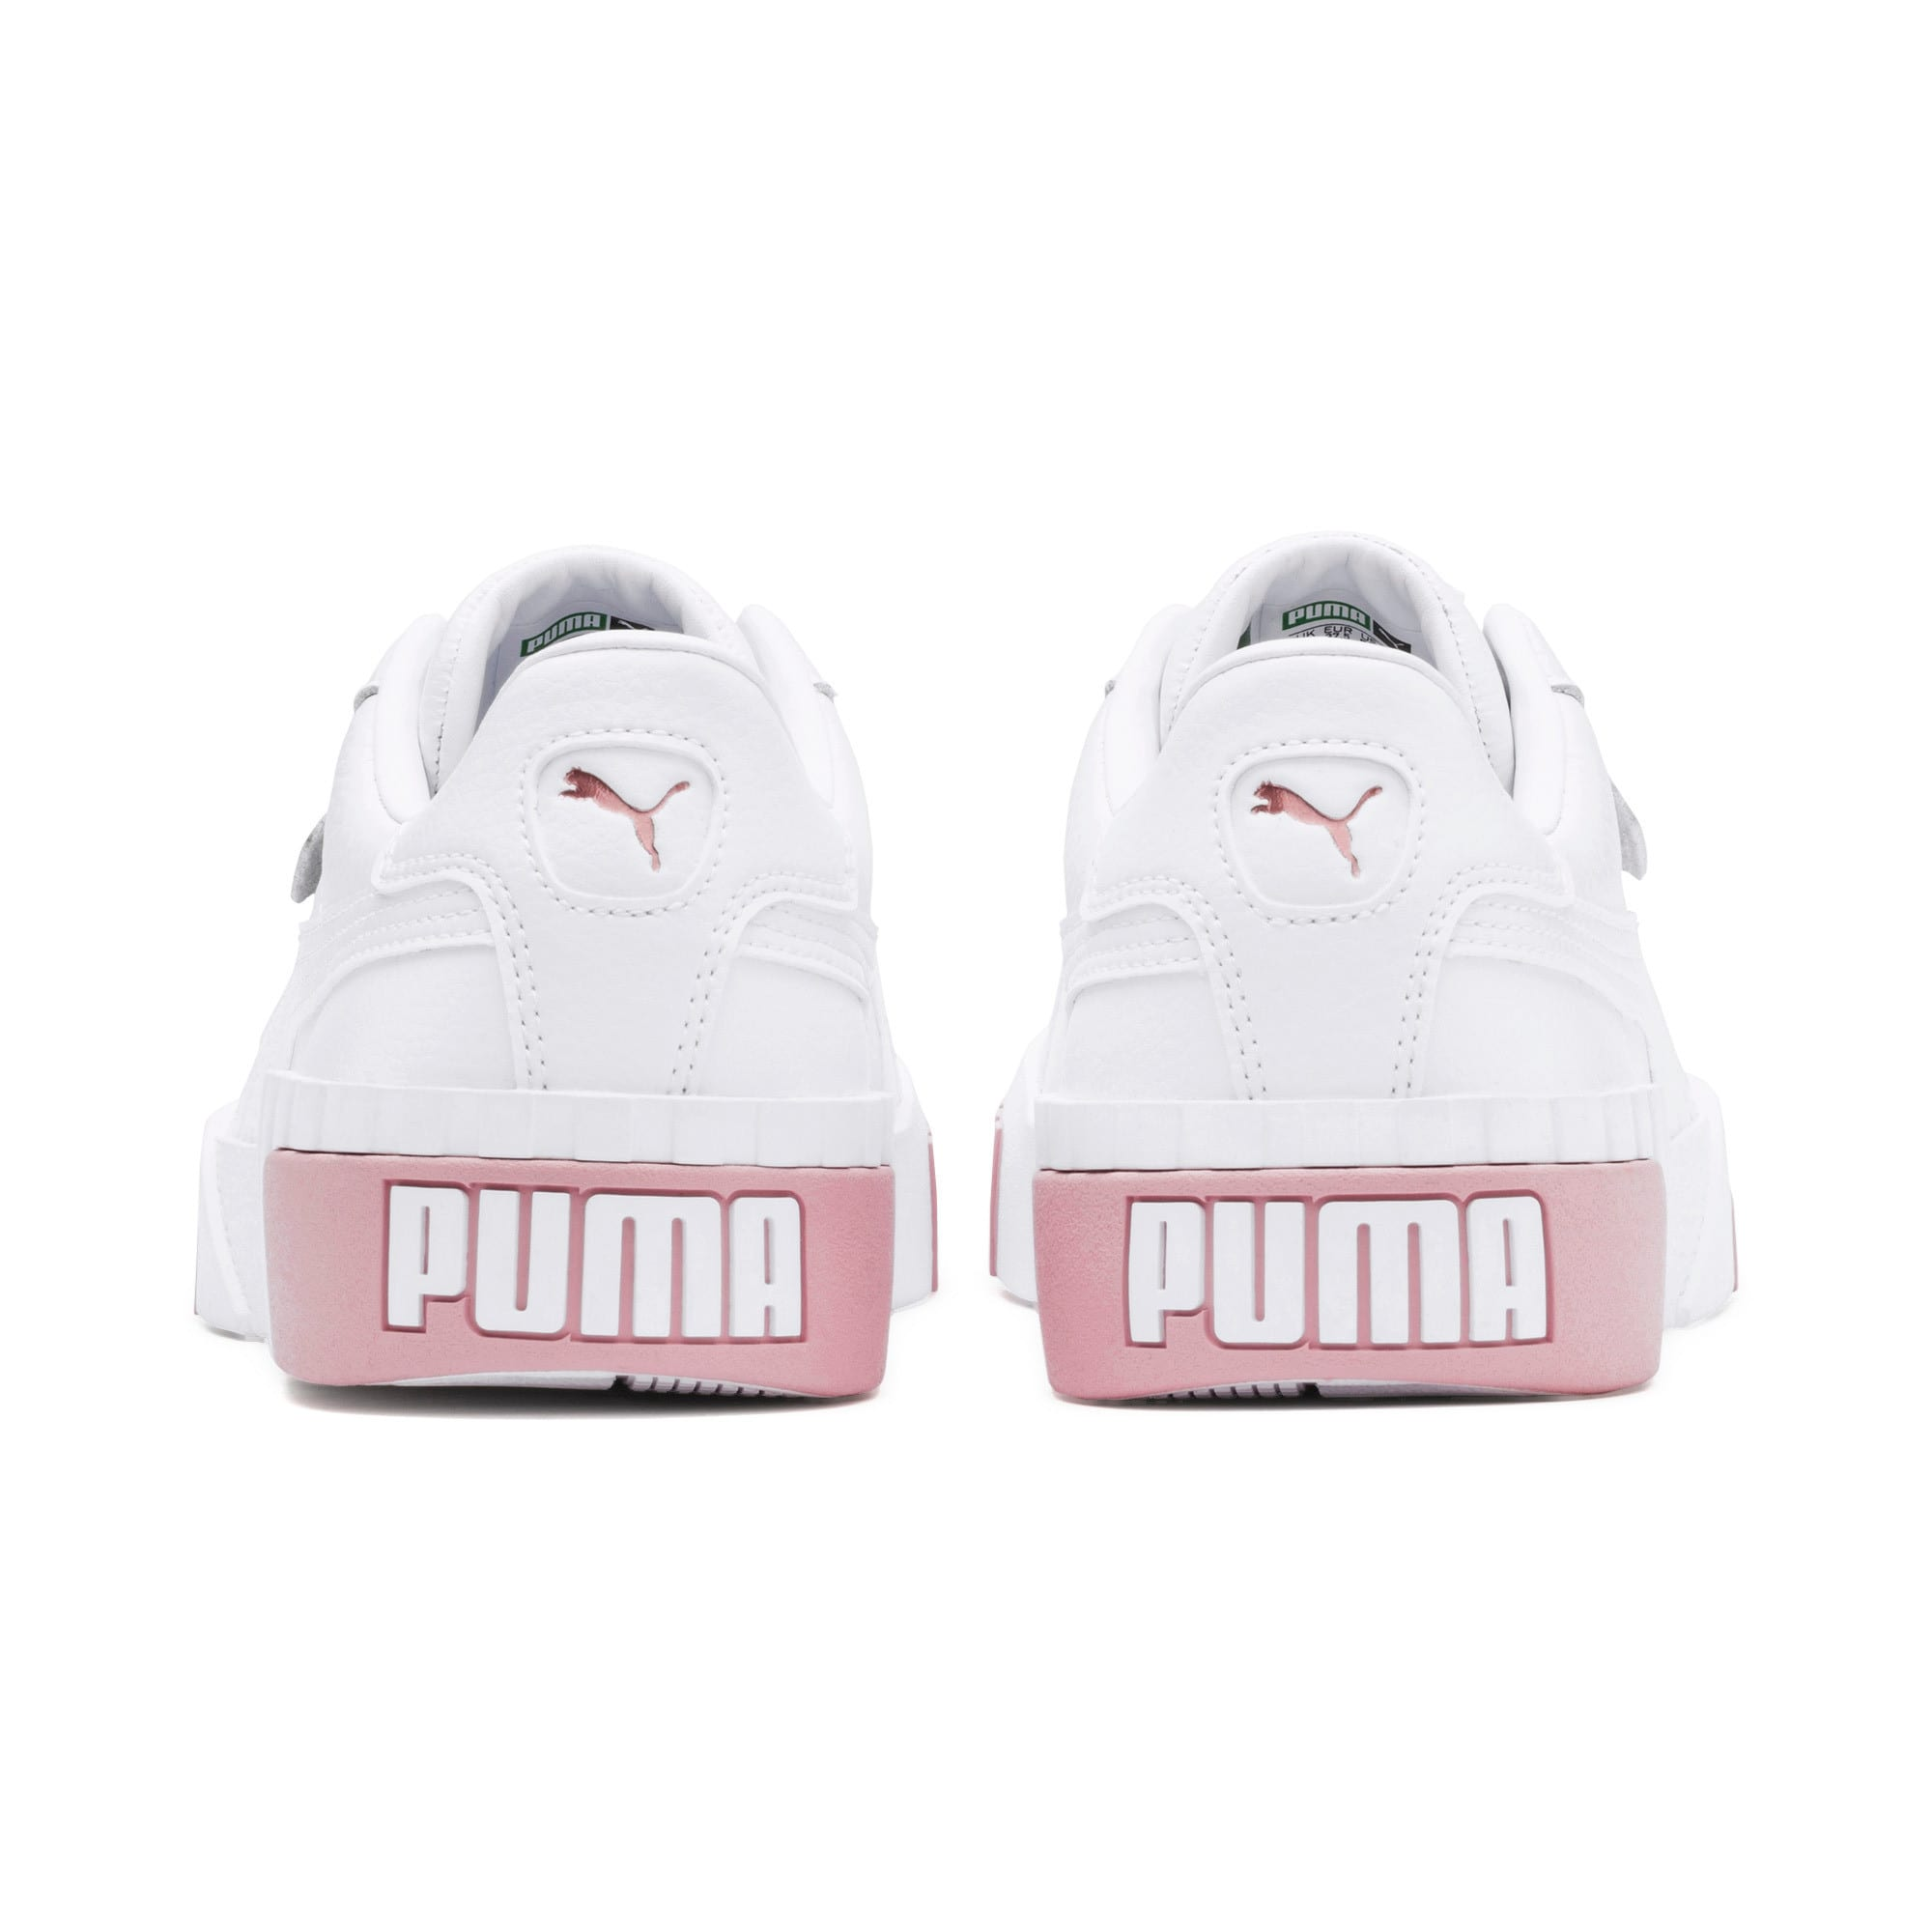 Thumbnail 5 of Cali Women's Trainers, Puma White-Rose Gold, medium-IND